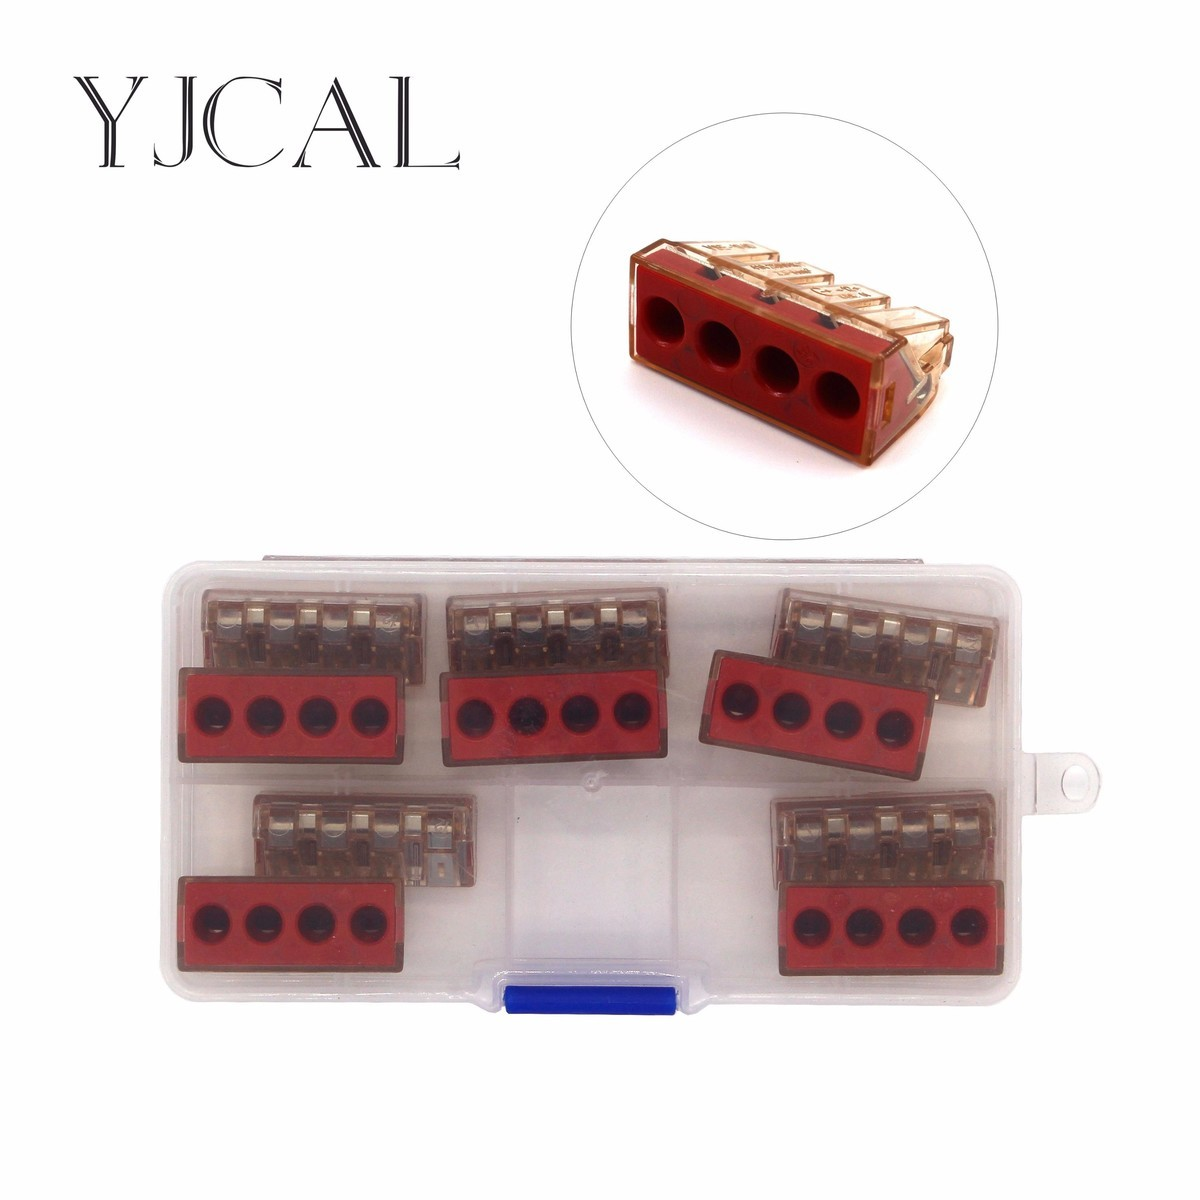 Wago Type D 104 10PCS/box Wire Terminal Quick Connector Plug Line Deconcentrator  Insulated Joint High current and high power 10pcs lot 5set t type red soft fast electric wire connecting terminal without breaking line connector non destructive connector